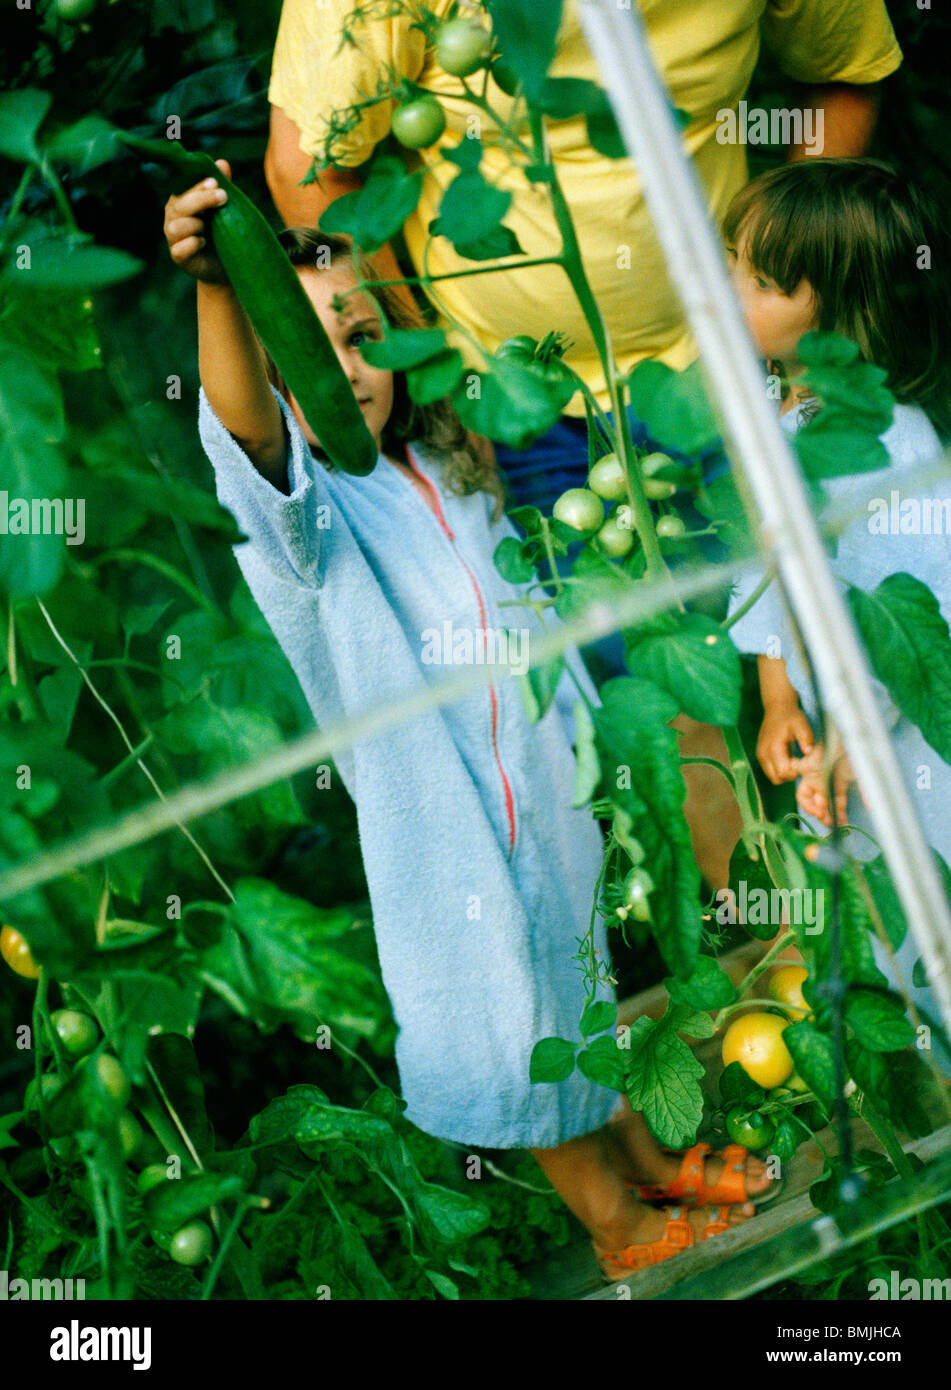 Children and one grownup in a glasshouse, Sweden. - Stock Image